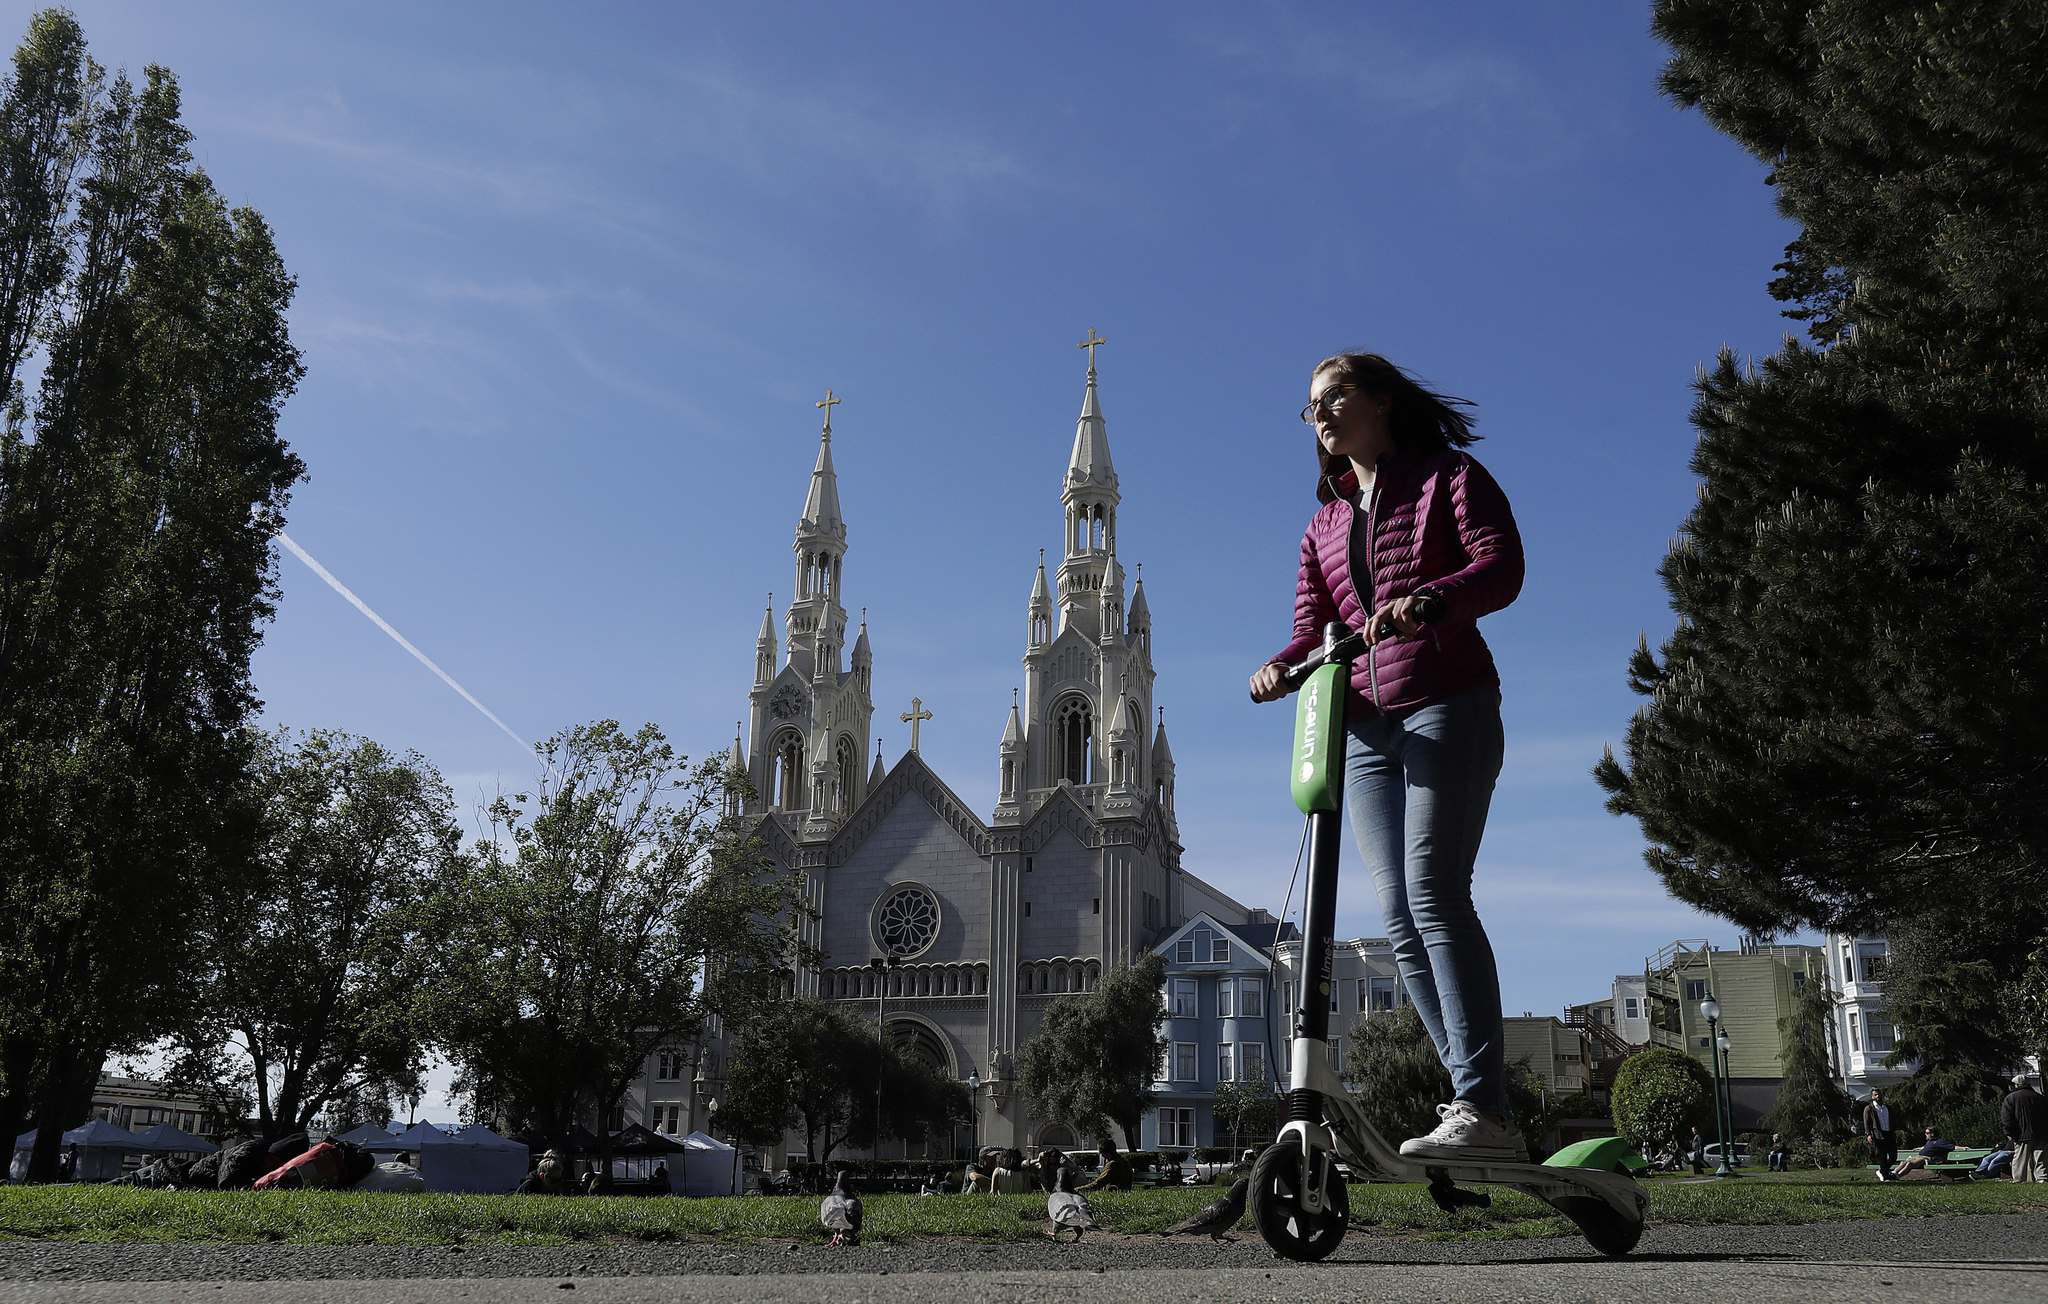 Electric scooters are designed for short trips as an alternative to a private car or taxi, and are locked and unlocked using an app. (Jeff Chiu / The Associated Press files)</p>